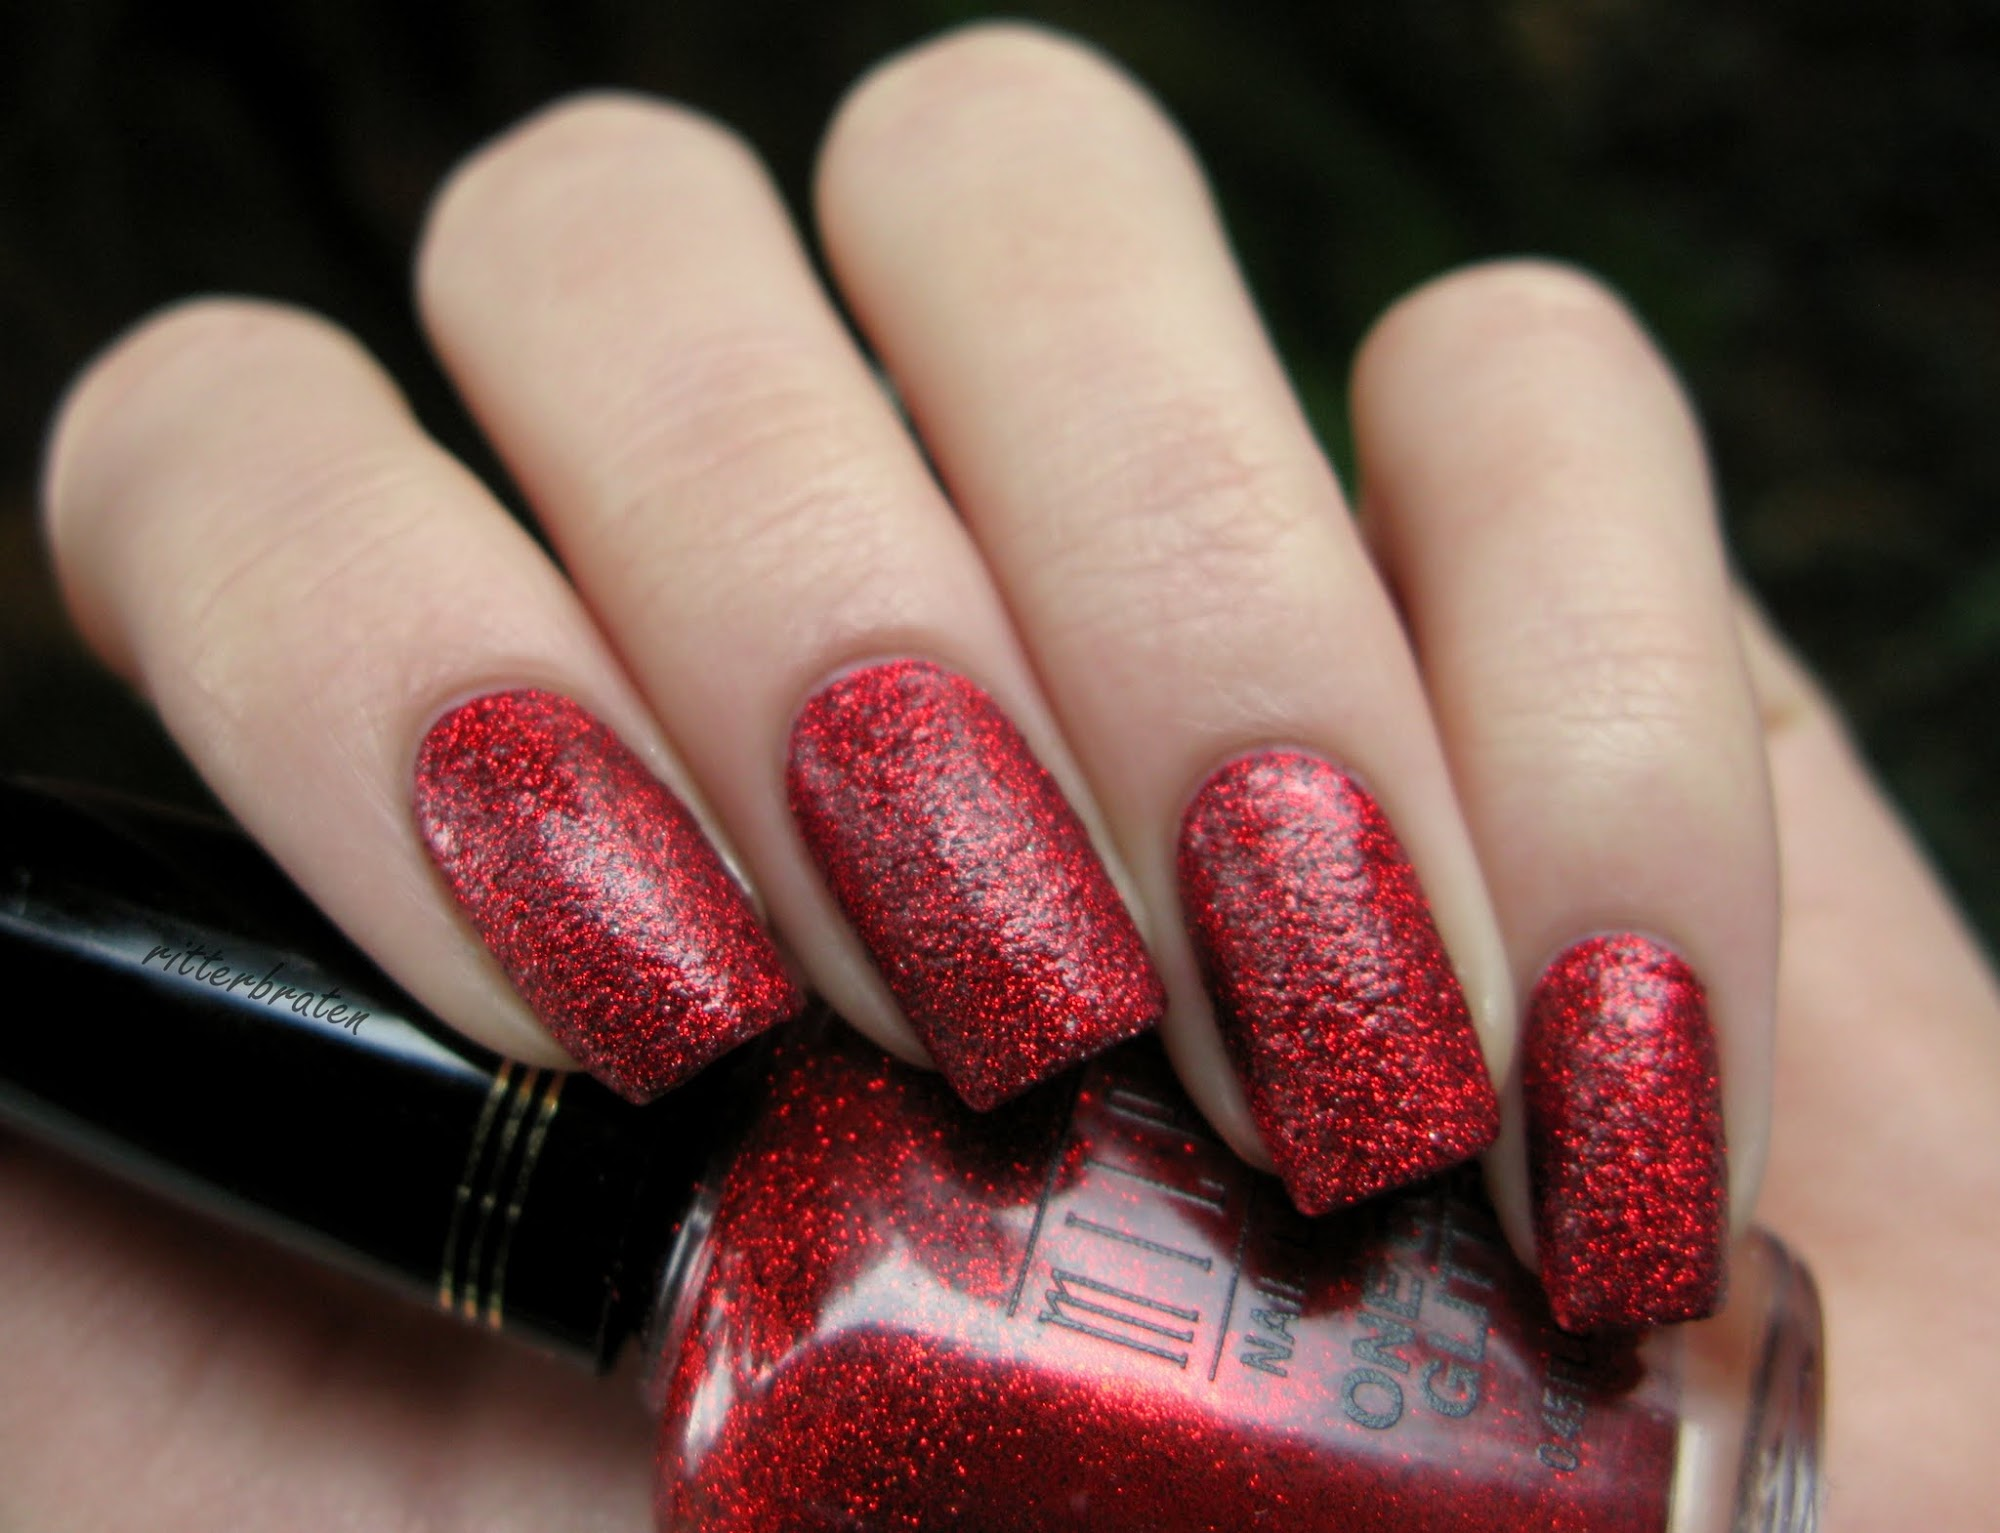 Milani Red Sparkle